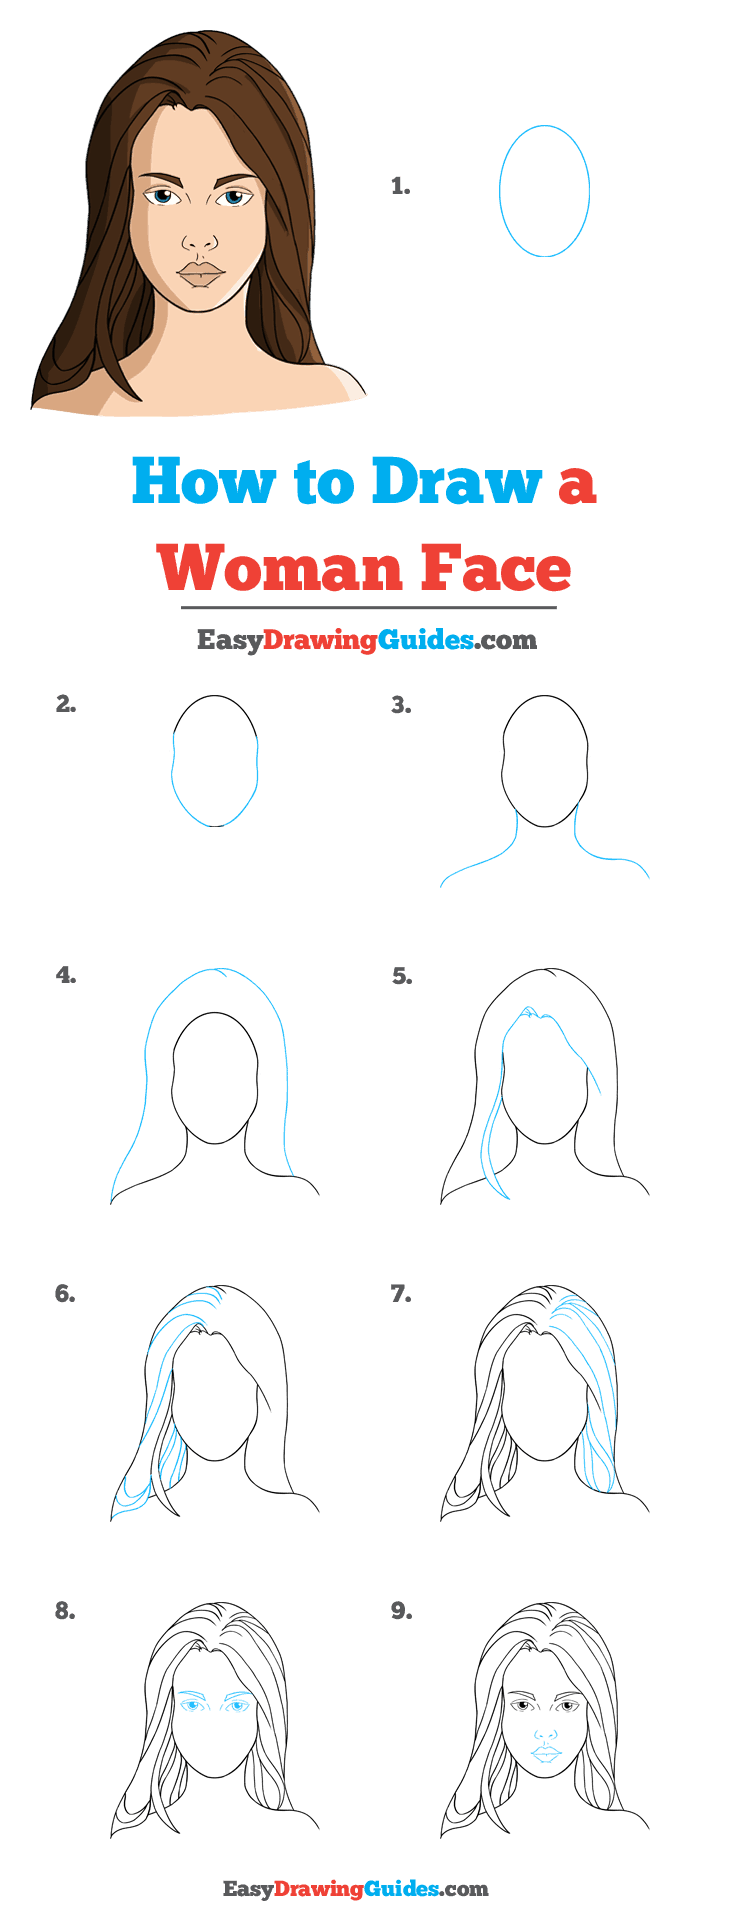 How to Draw Woman's Face